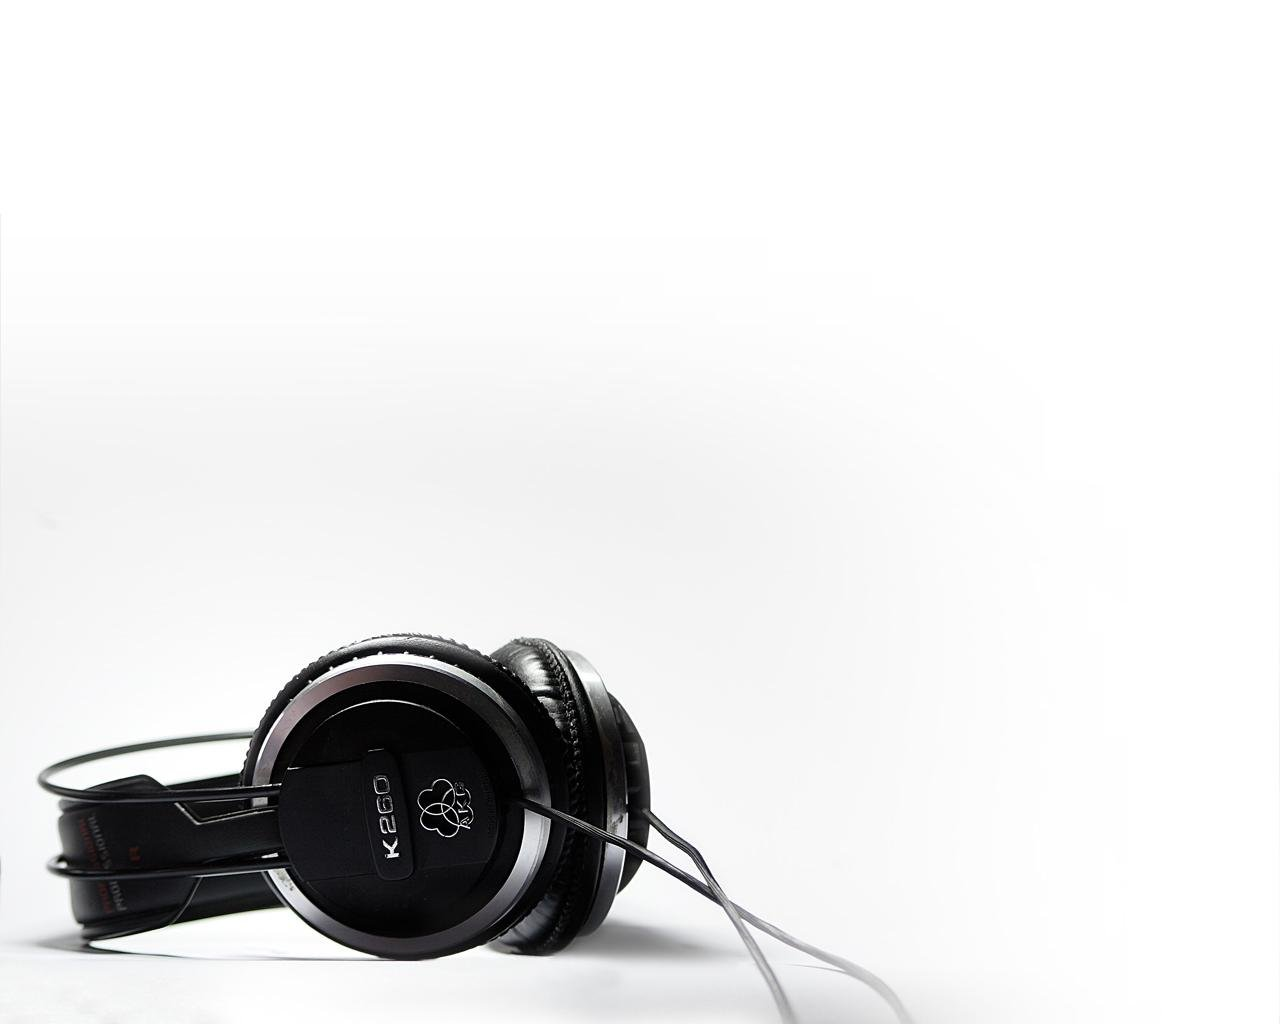 Free download Headphones background ID:47490 hd 1280x1024 for computer